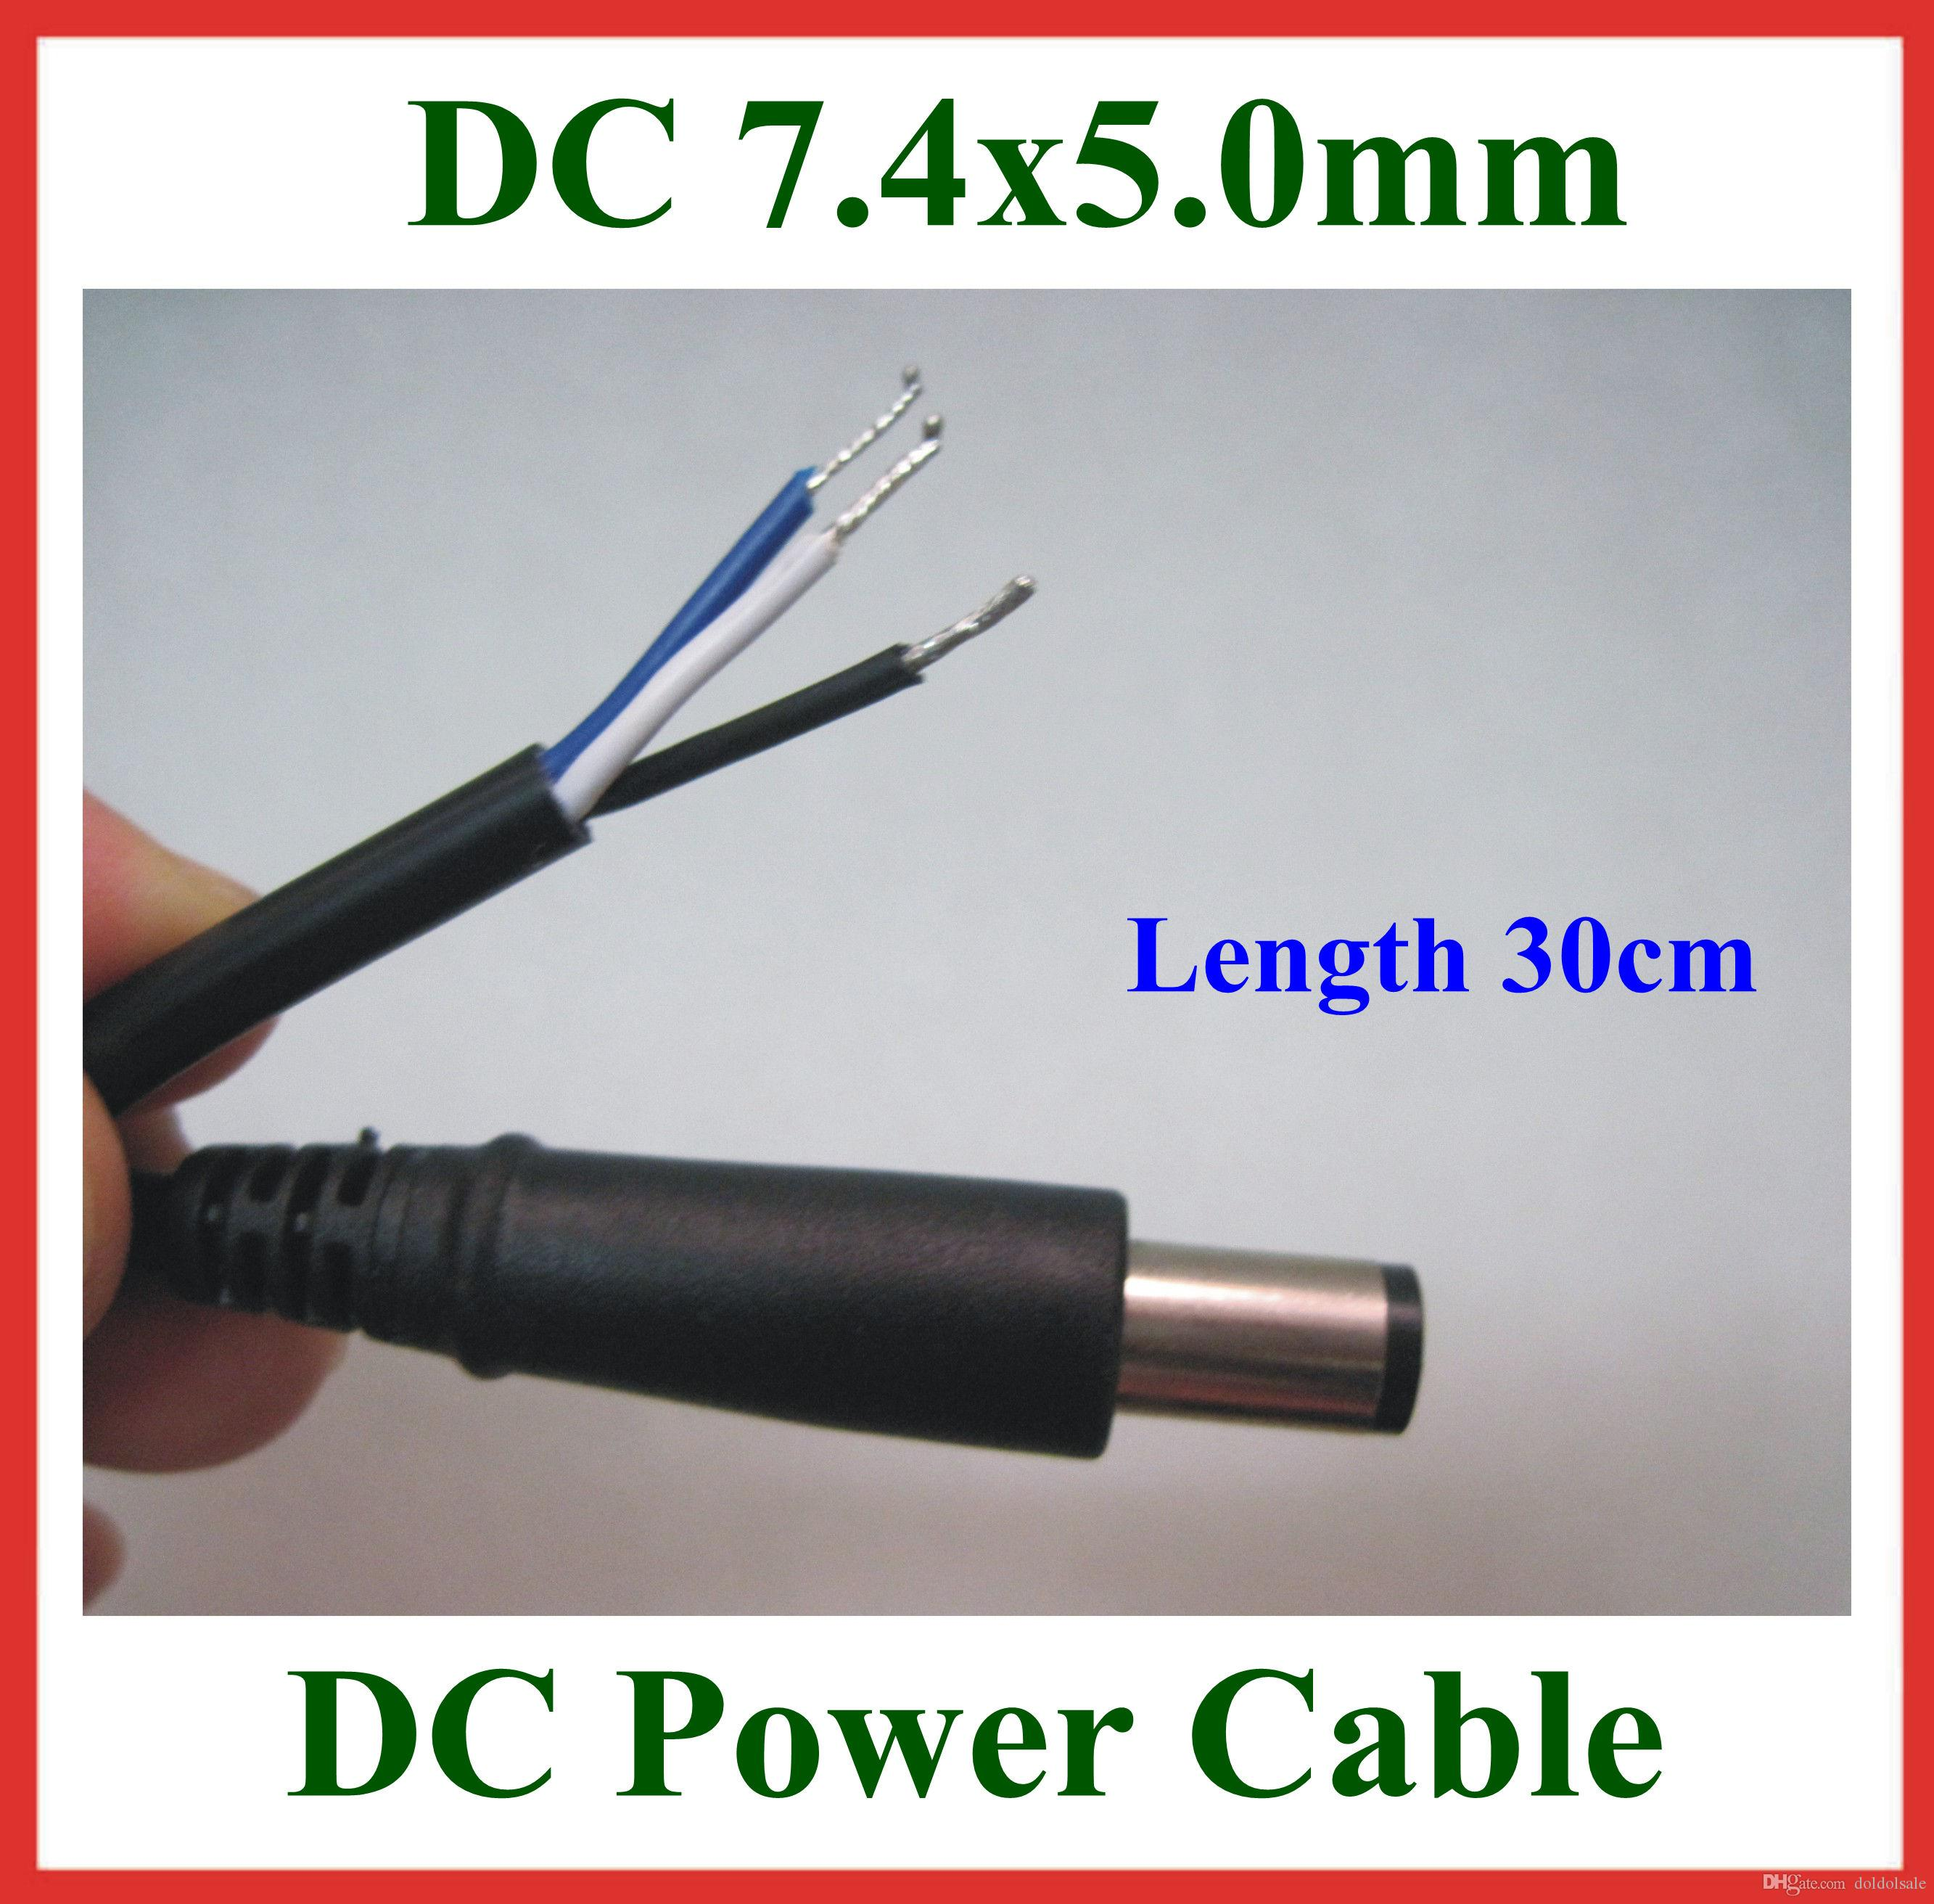 2pcs dc tip plug 7 4 5 0mm 7 4x5 0mm dc power dc tip plug 7 4*5 0mm 7 4x5 0mm dc power supply cable with pin wiring diagram for hp laptop charger at bakdesigns.co